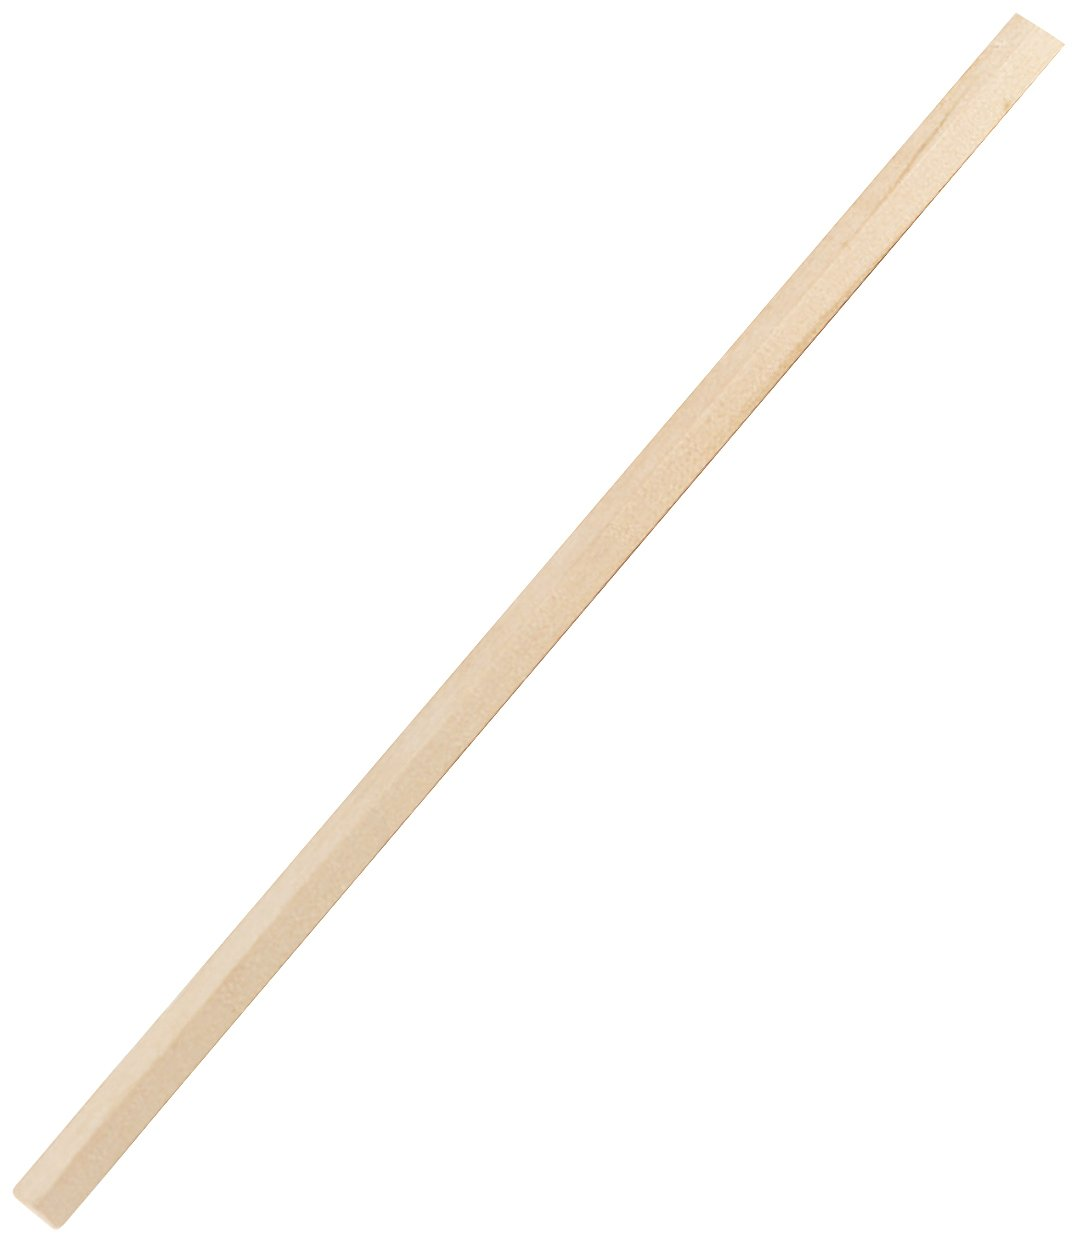 Pro Series ACRF 48-Inch Long Poplar Wood Pool Table Single Feather Strips